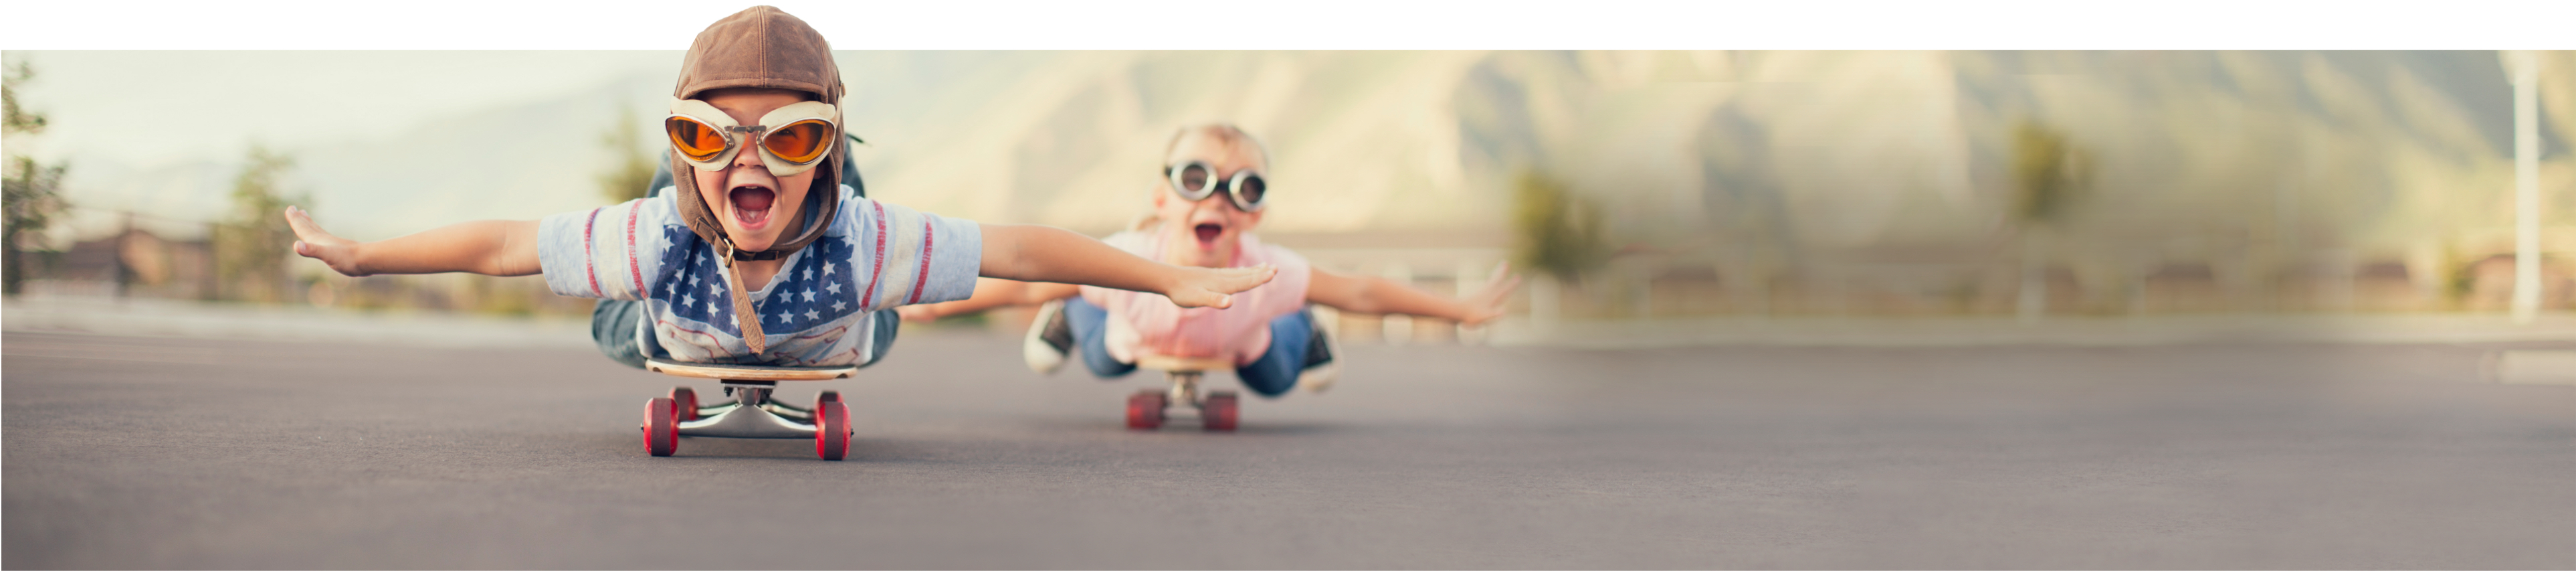 Two kids laying on skateboards pretending to fly